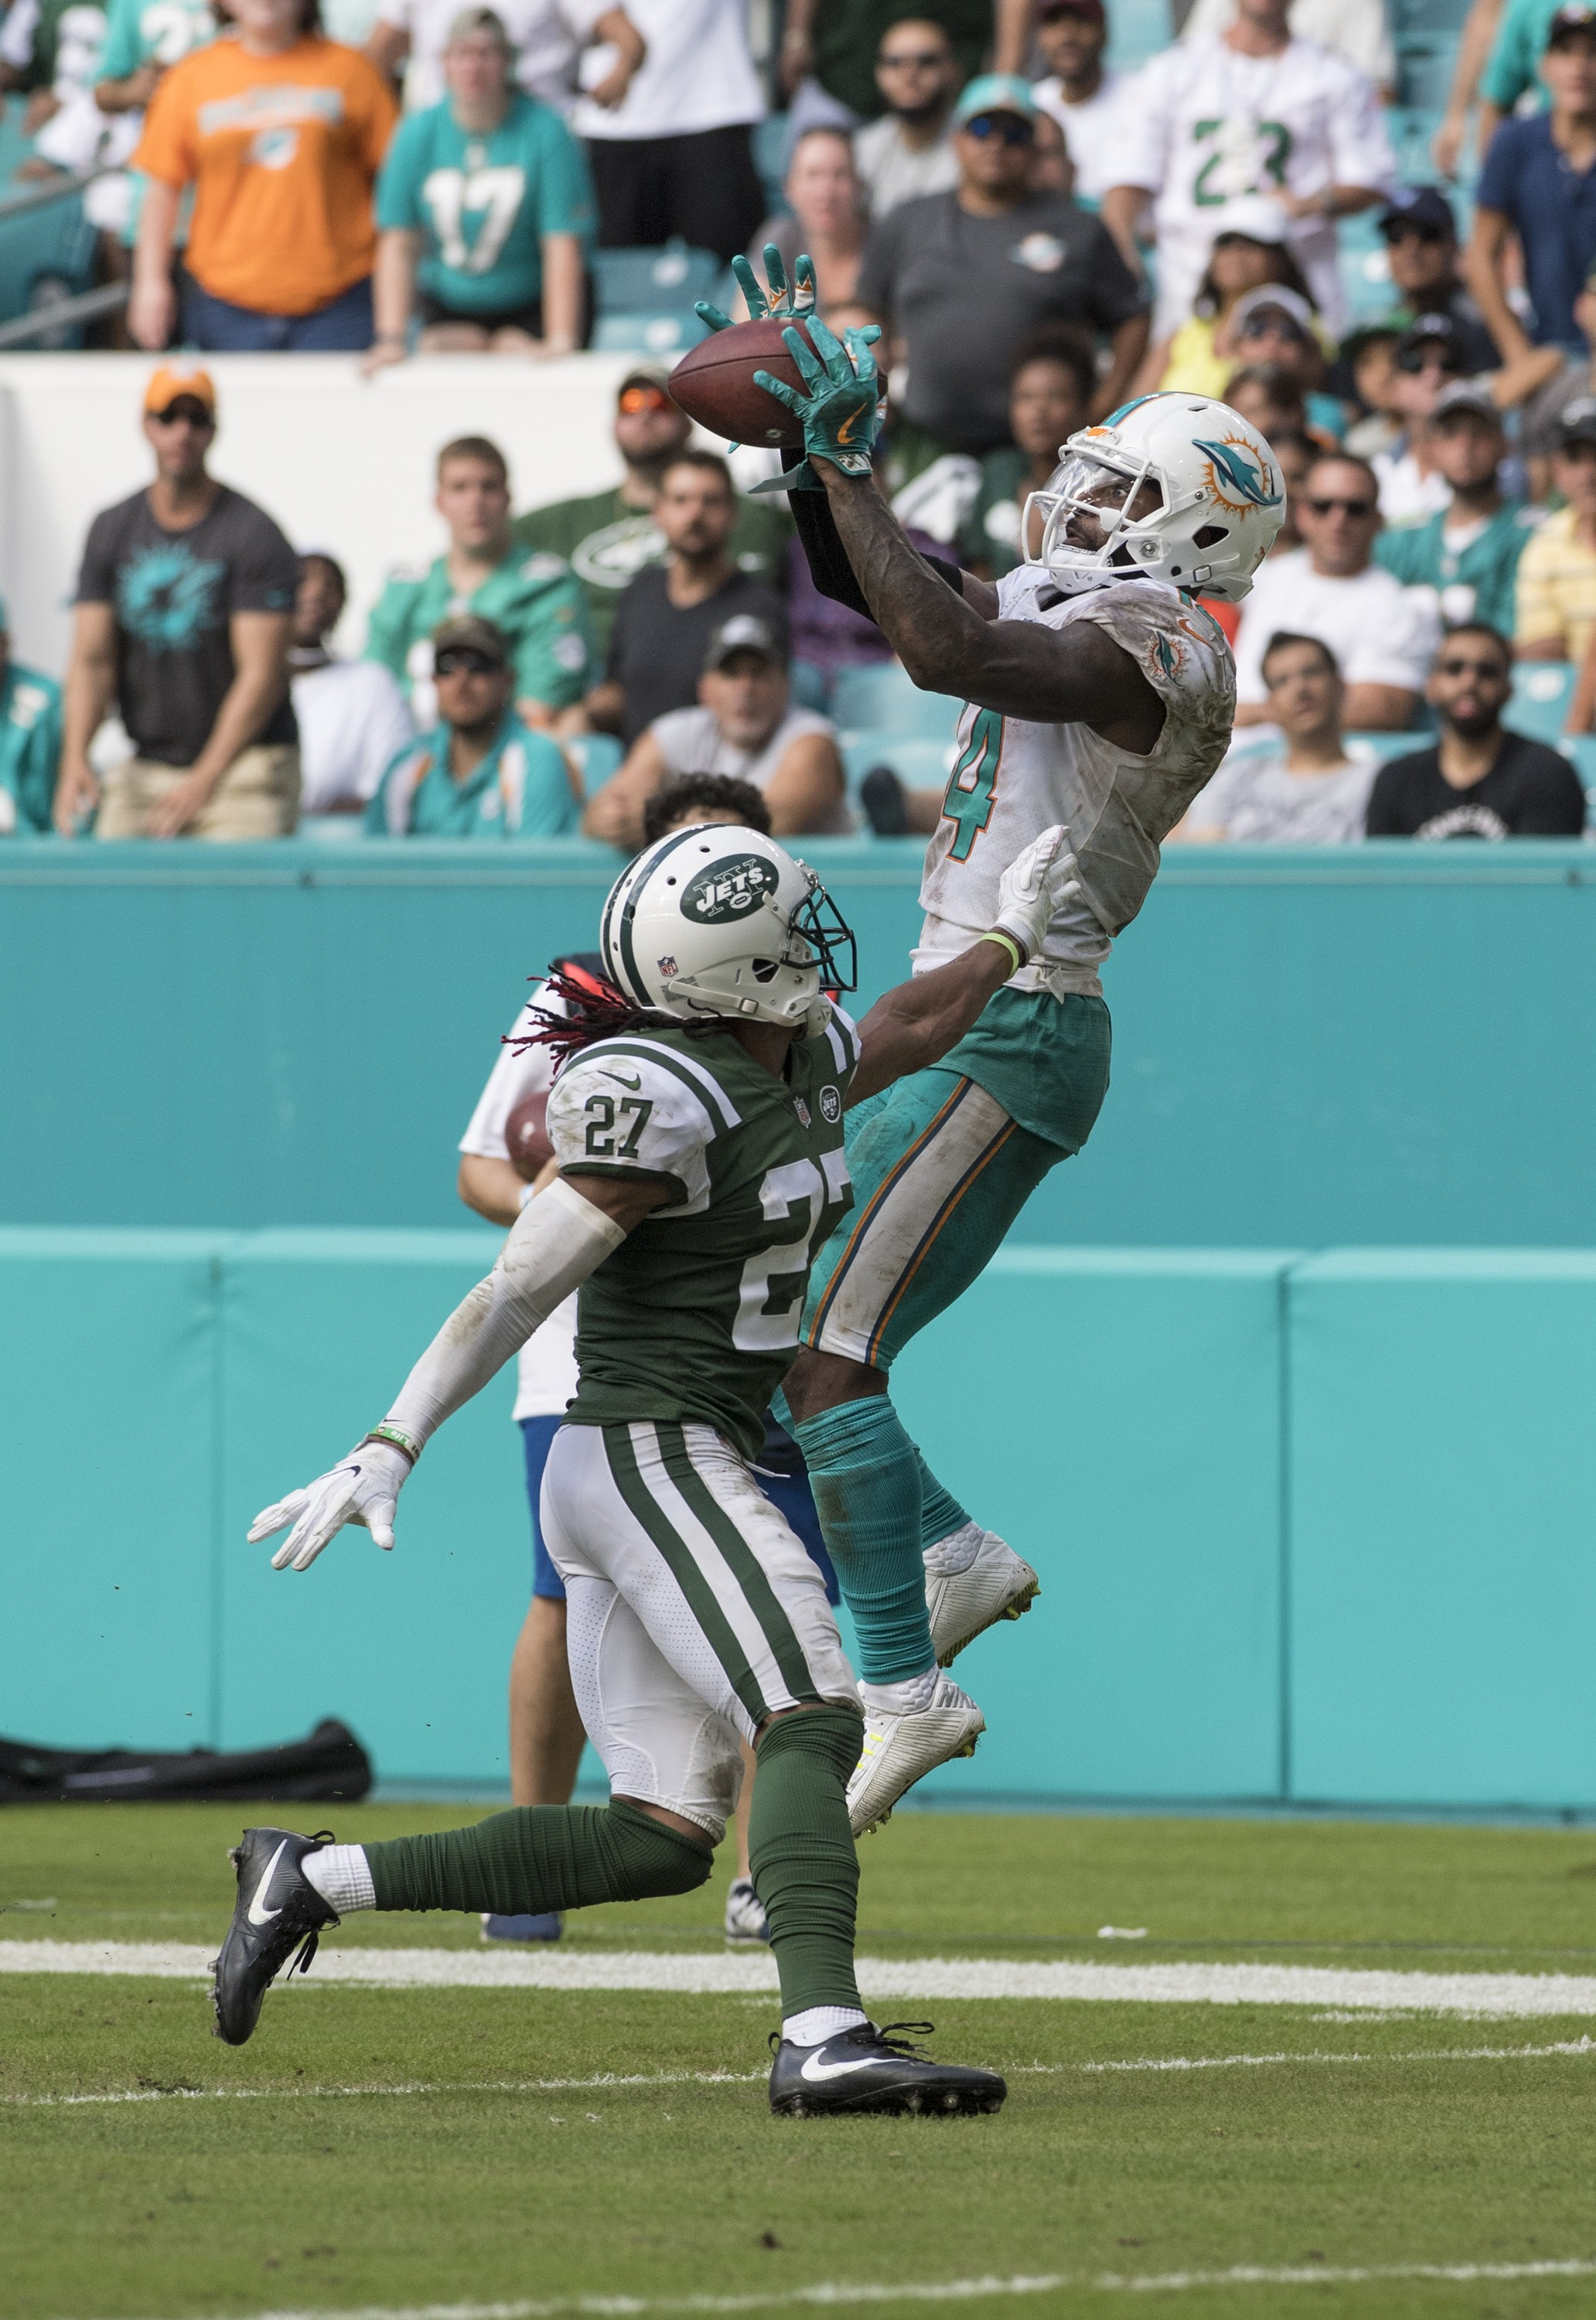 Miami Dolphins wide receiver Jarvis Landry (14) goes high for Matt Moore (8) pass as New York Jets cornerback Darryl Roberts (27) defends in the 4th qtr to give the Dolphins a 1st down of an NFL football game on Sunday, Oct. 22, 2017, in Miami Gardens, Fla. The Miami Dolphins went on to win 28-31.(Donald Edgar/El Latino Digital)